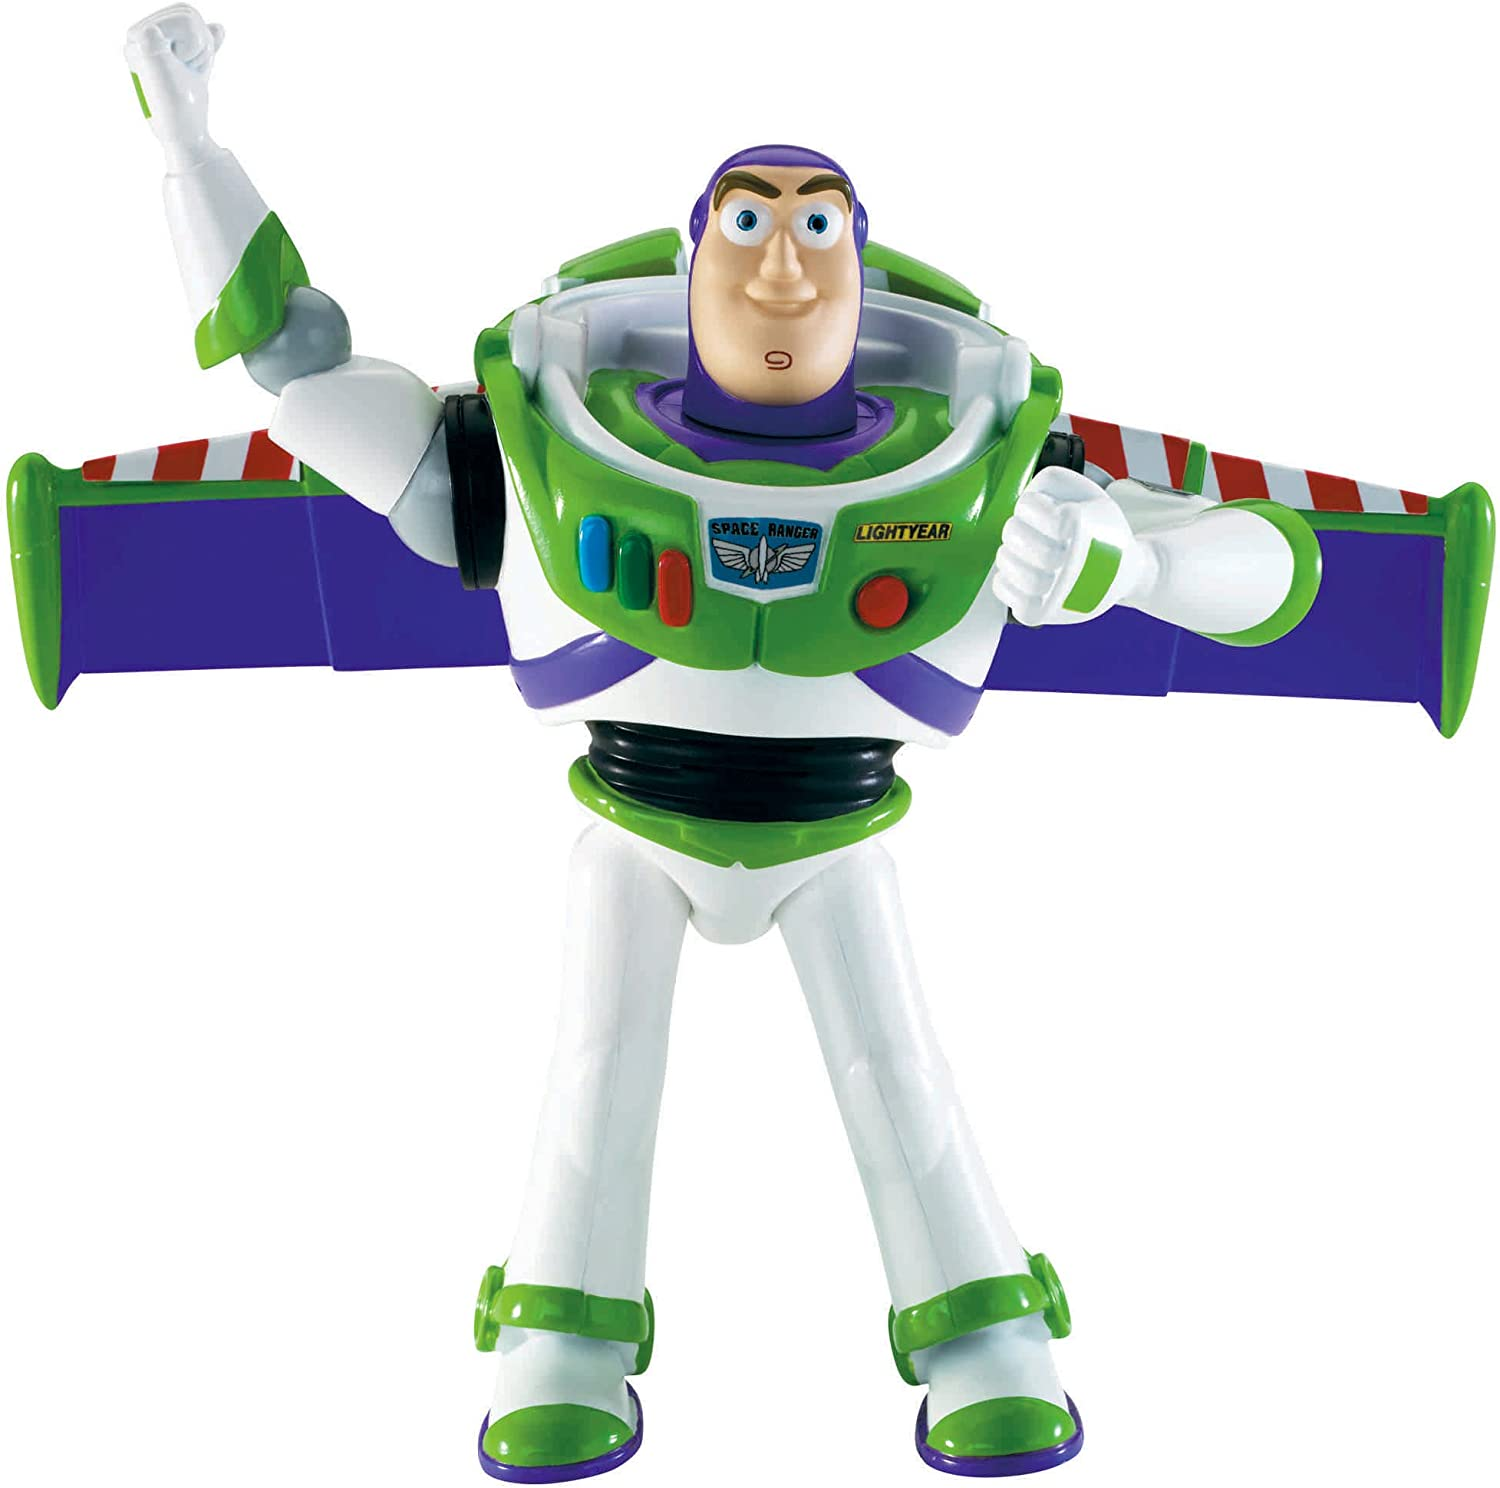 Toy Story Deluxe Talking Buzz Lightyear Figure